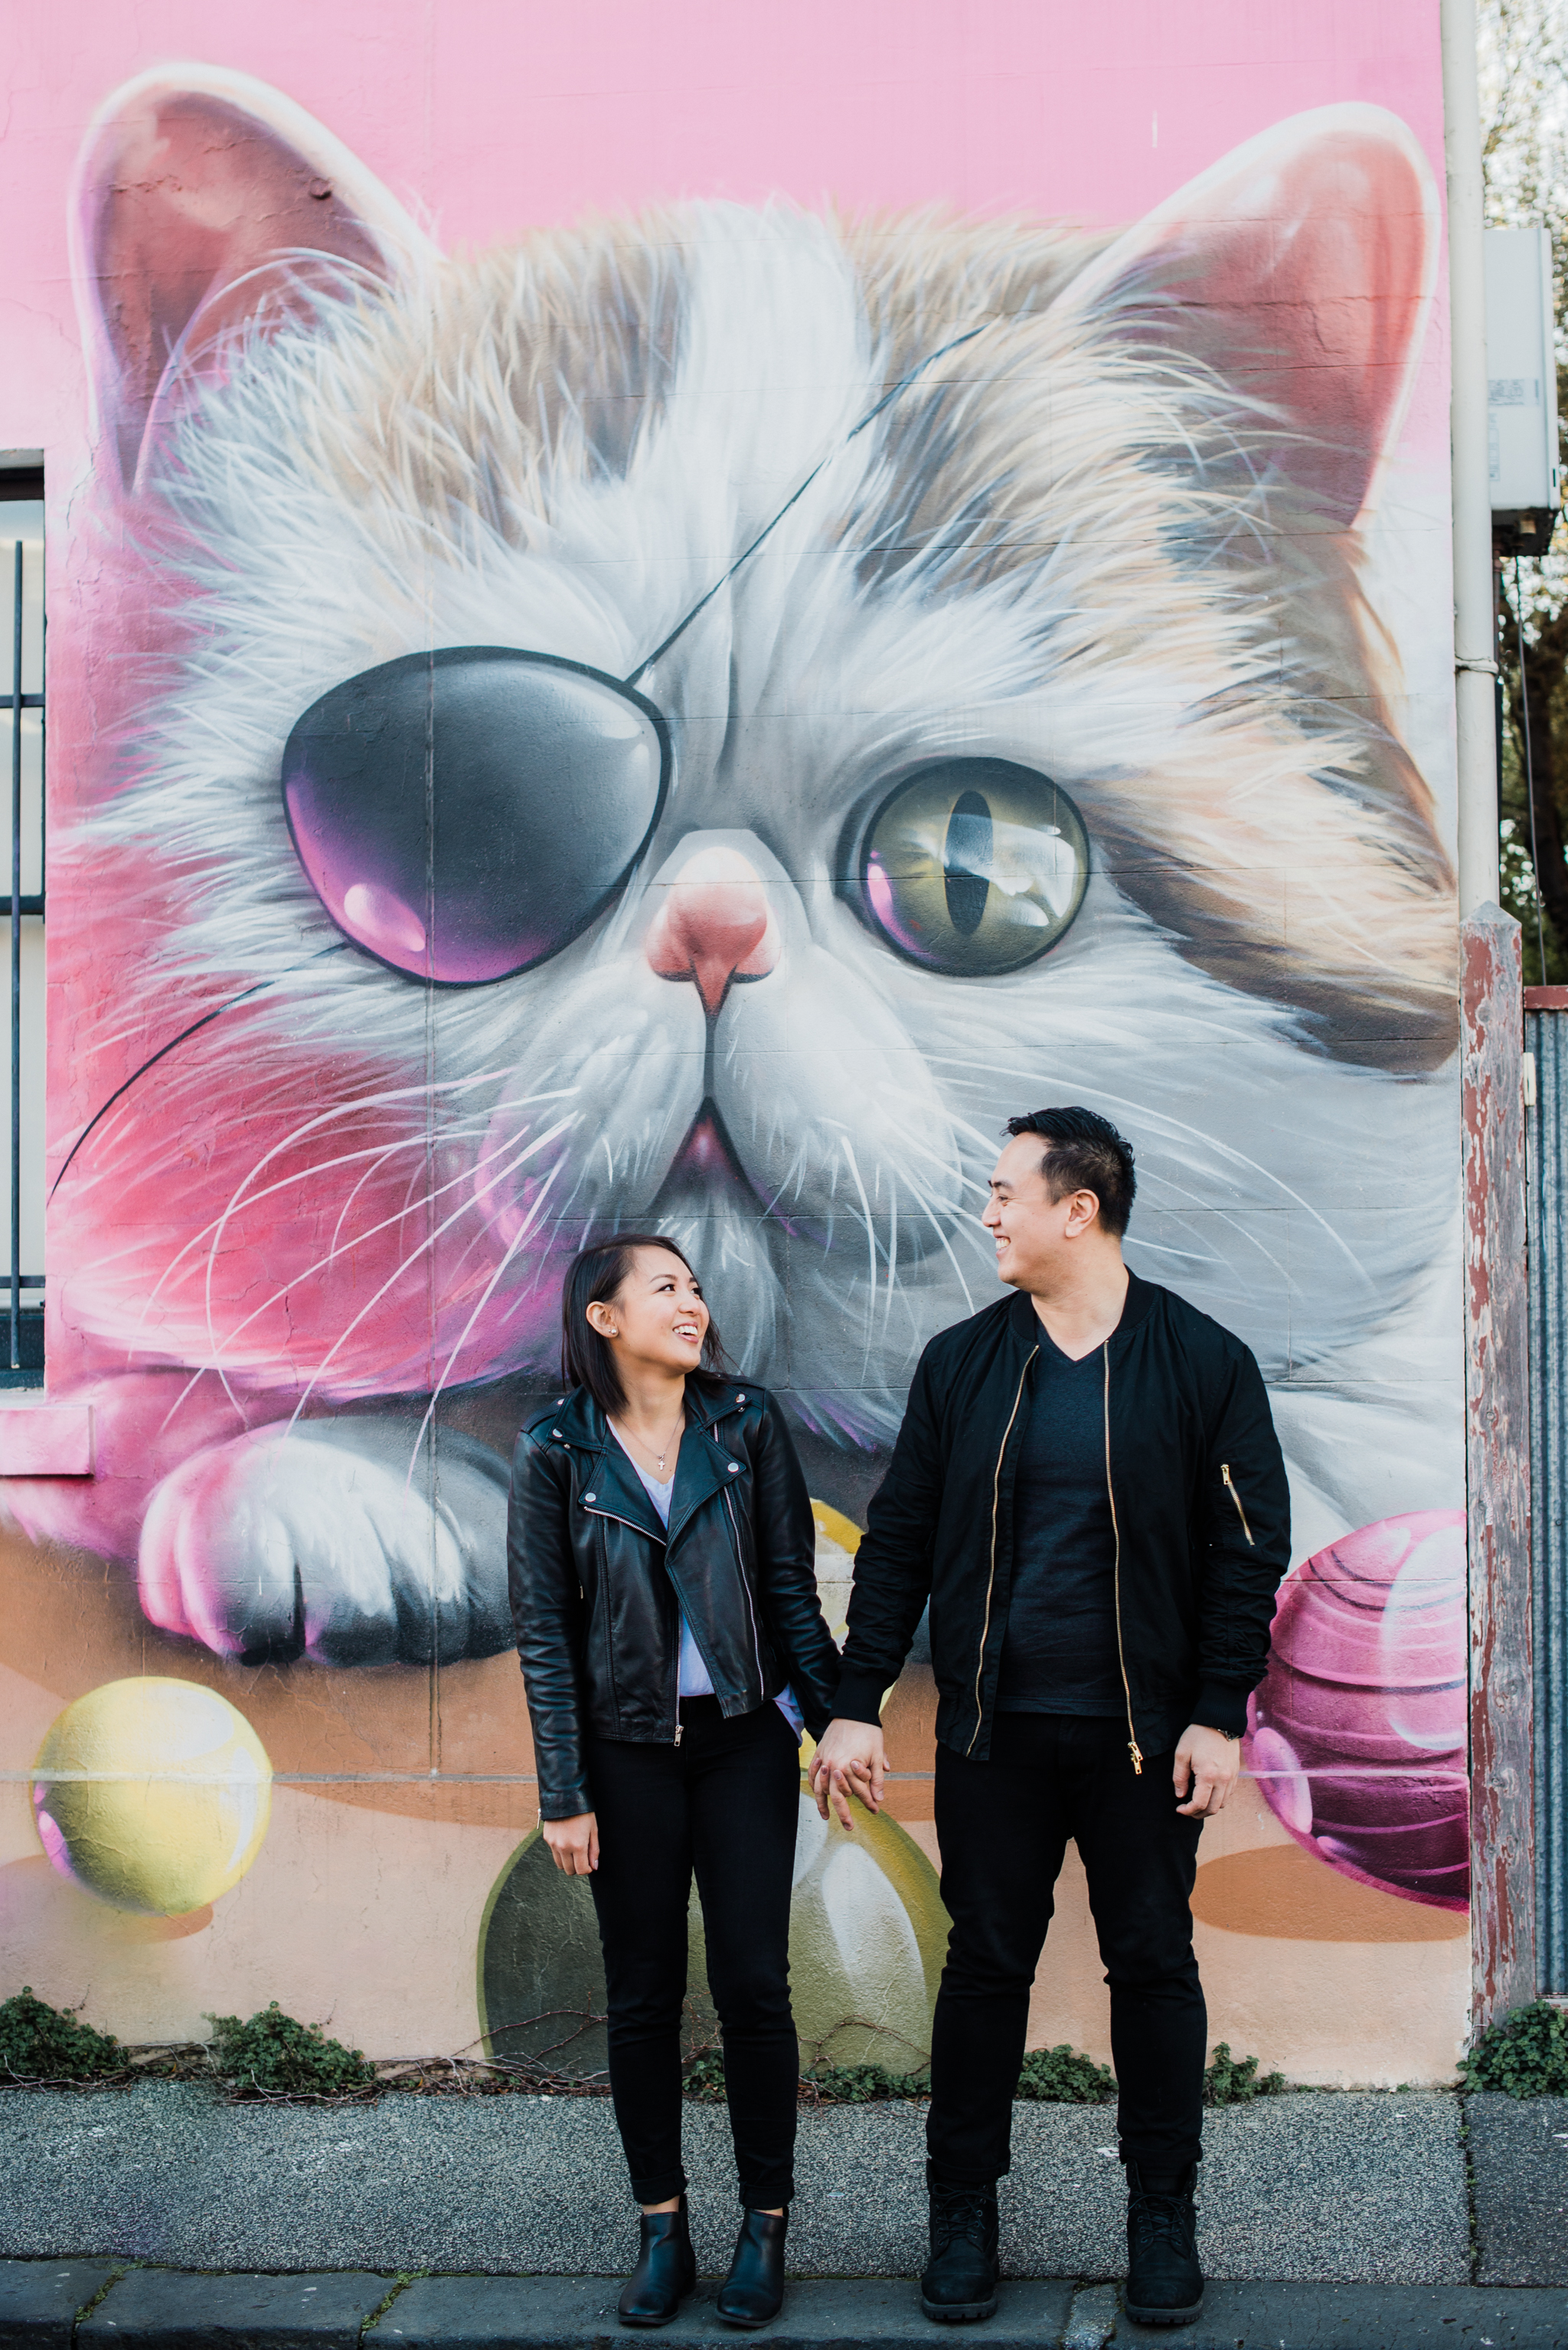 LOVELENSCAPES PHOTOGRAPHY • REZA & DEREK • MELBOURNE FITZROY ENGAGEMENT PHOTOGRAPHY